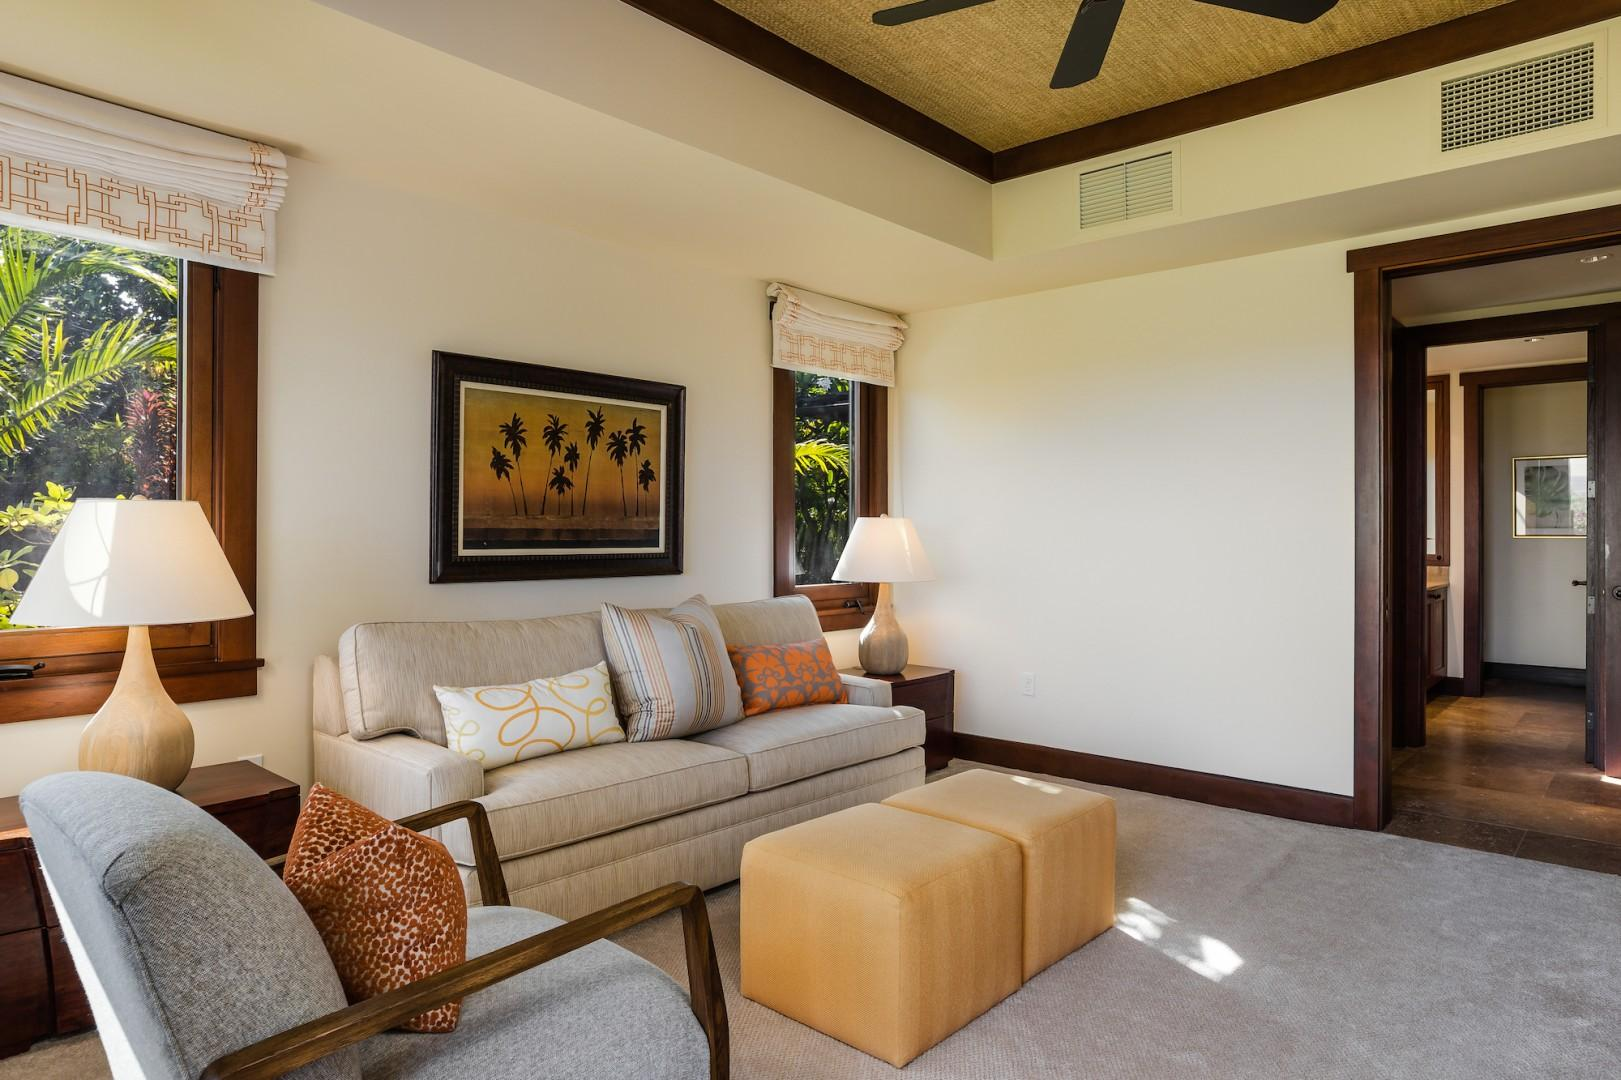 Alternate view of Den showcasing natural light and chic decor.